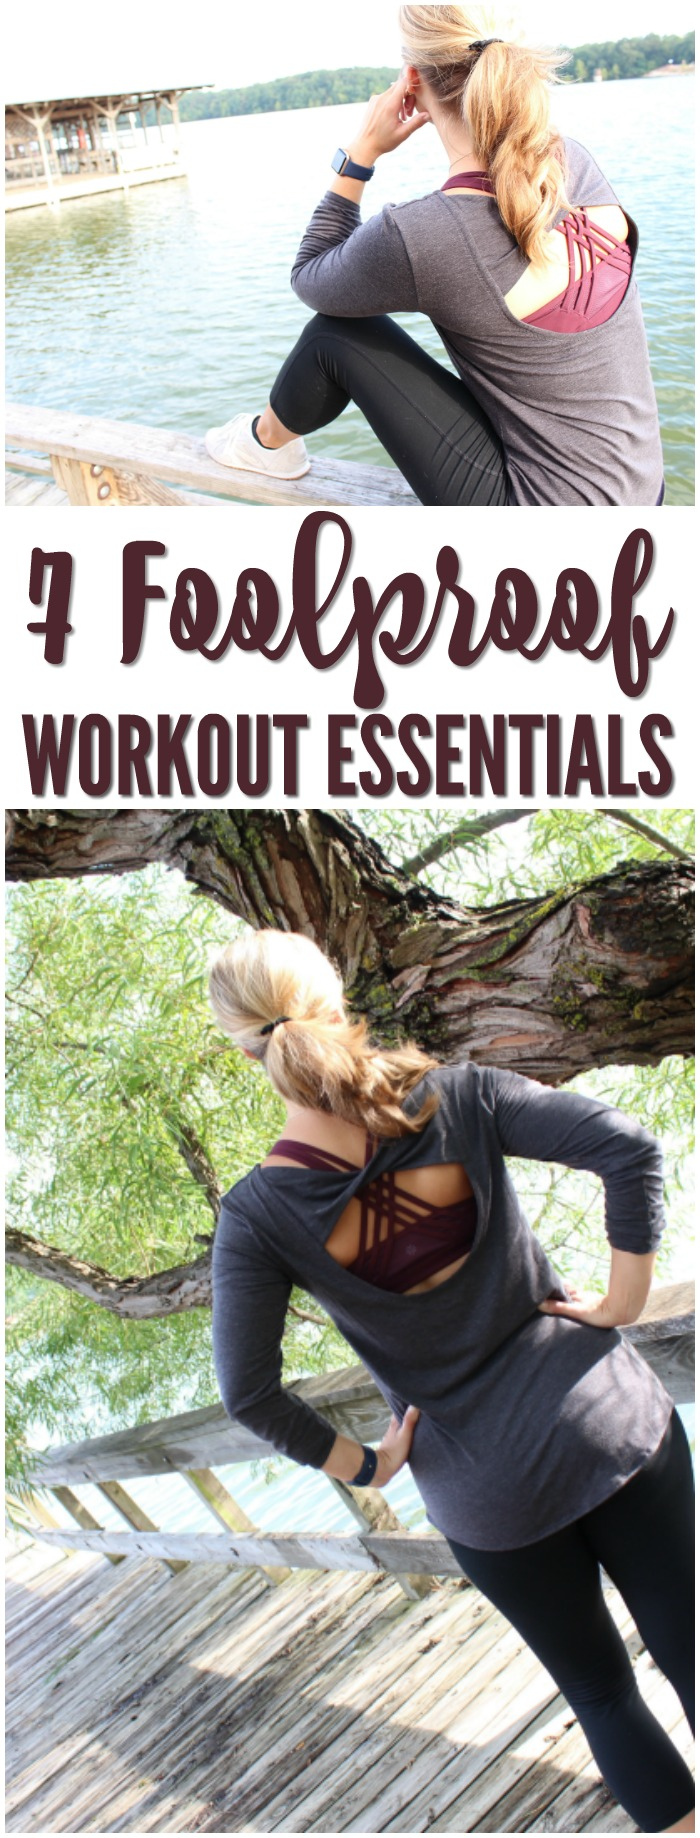 7 Foolproof Workout Essentials! How to Jumpstart Your Workout Routine for Fall!